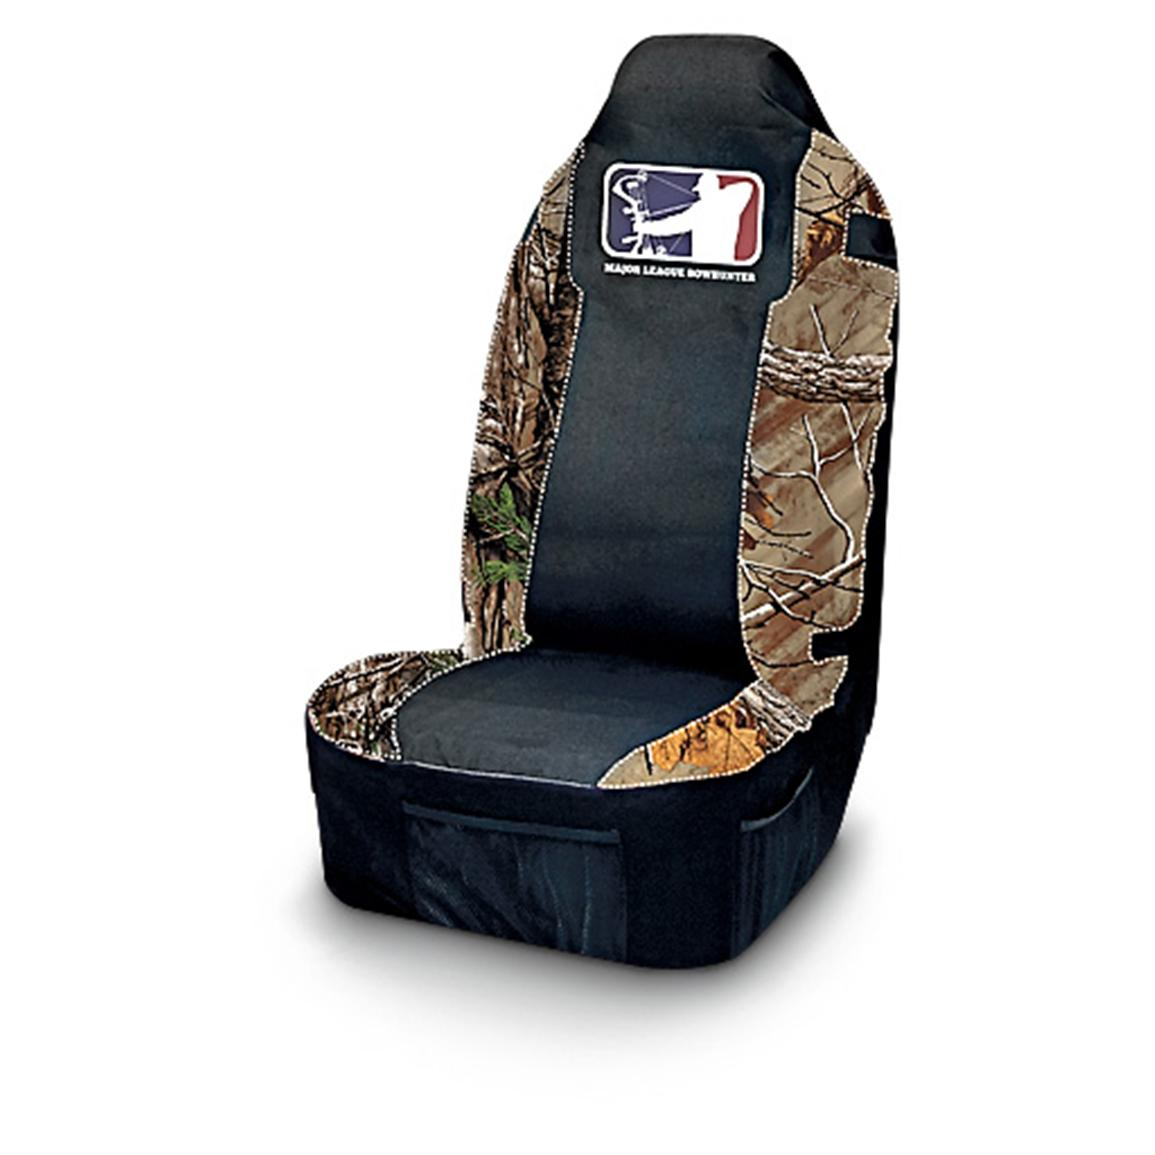 Universal Seat Cover 293825 Seat Covers At Sportsman S